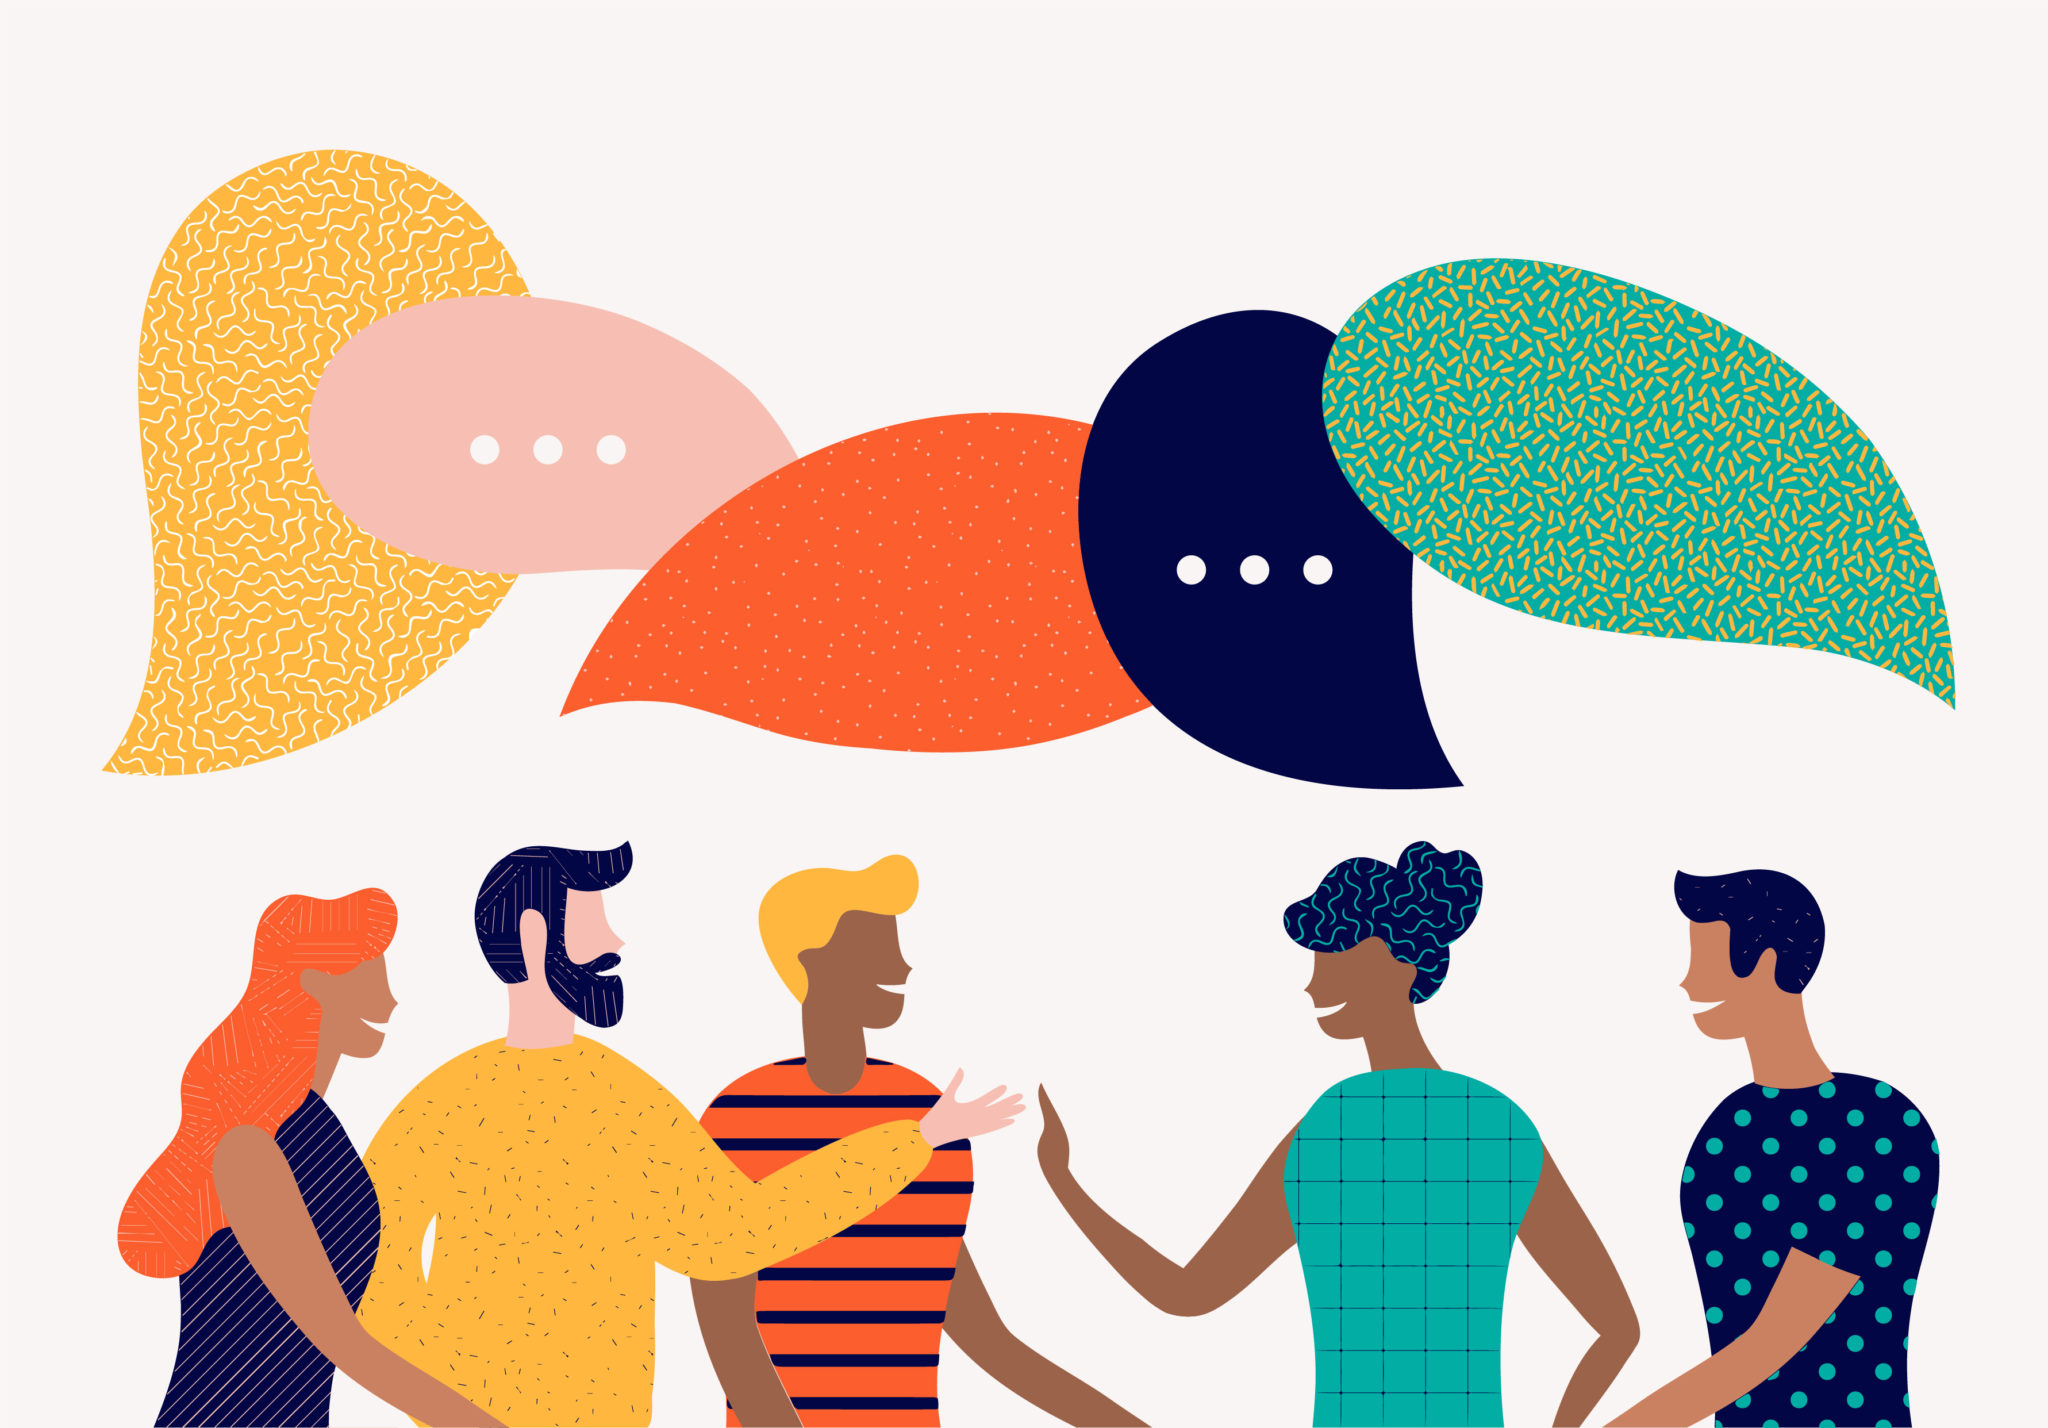 Illustration of people talking